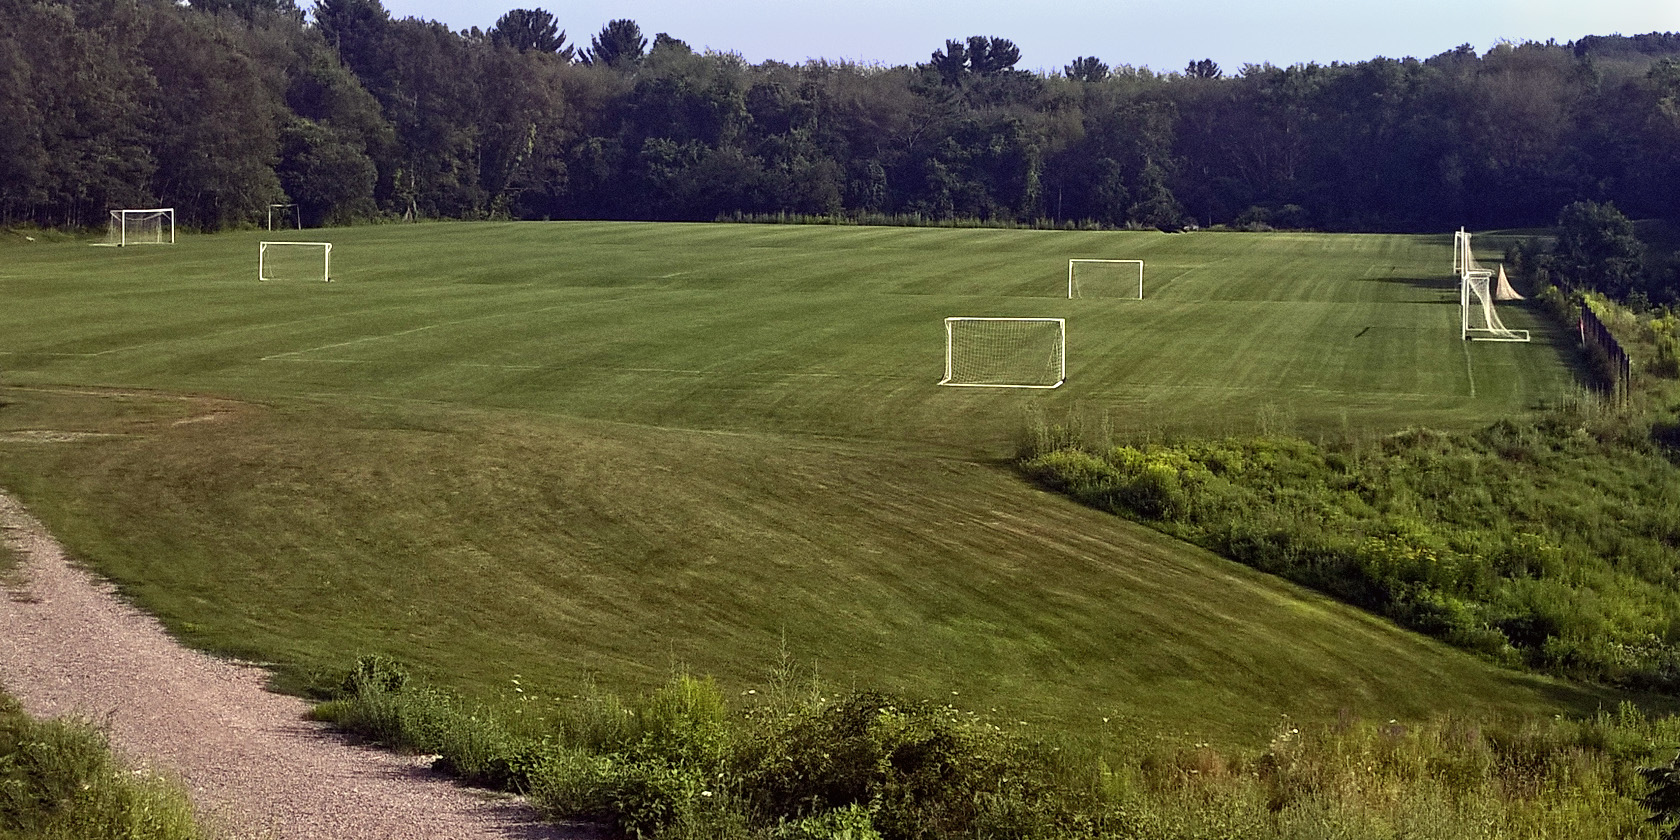 Pipestave Hill Athletic Field